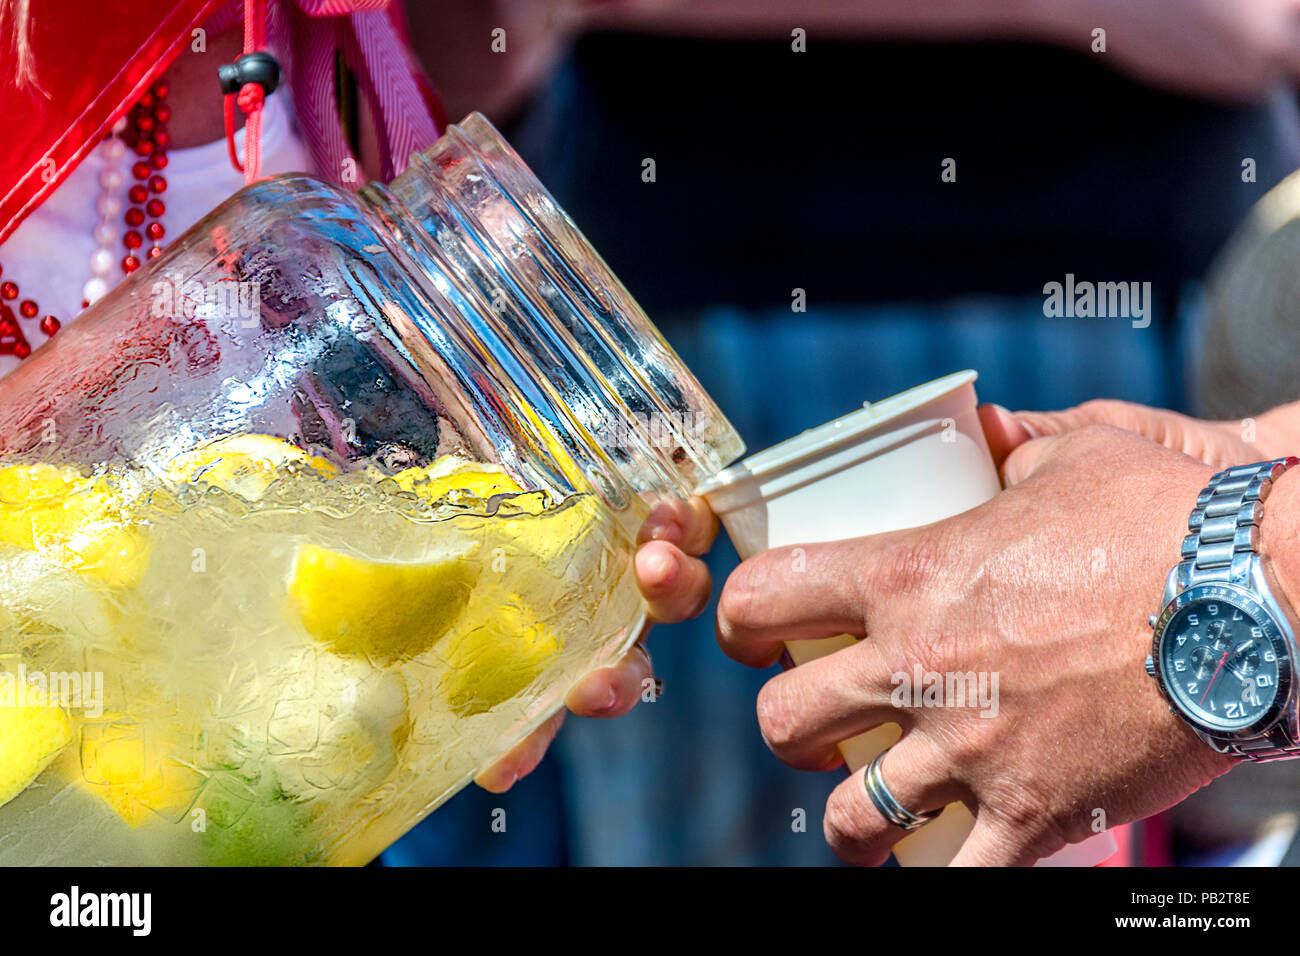 Woman in beads pours cold water with ice and carved lemons from a glass bottle into a glass for man with a ring and a clock on his hand - Stock Image